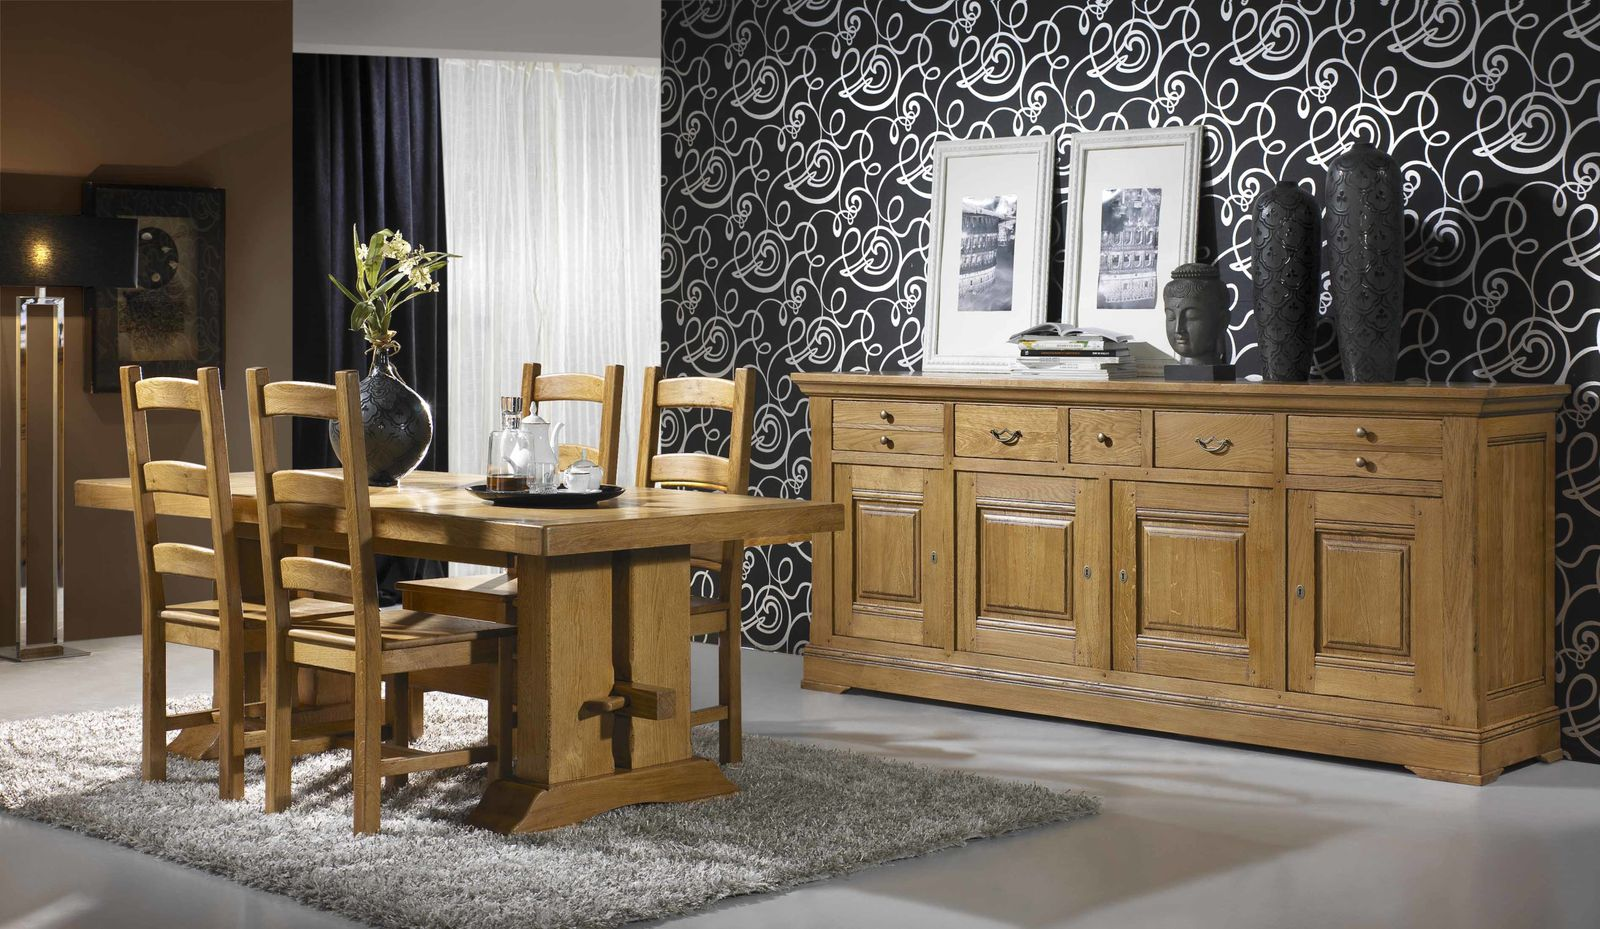 salle manger en ch ne massif. Black Bedroom Furniture Sets. Home Design Ideas